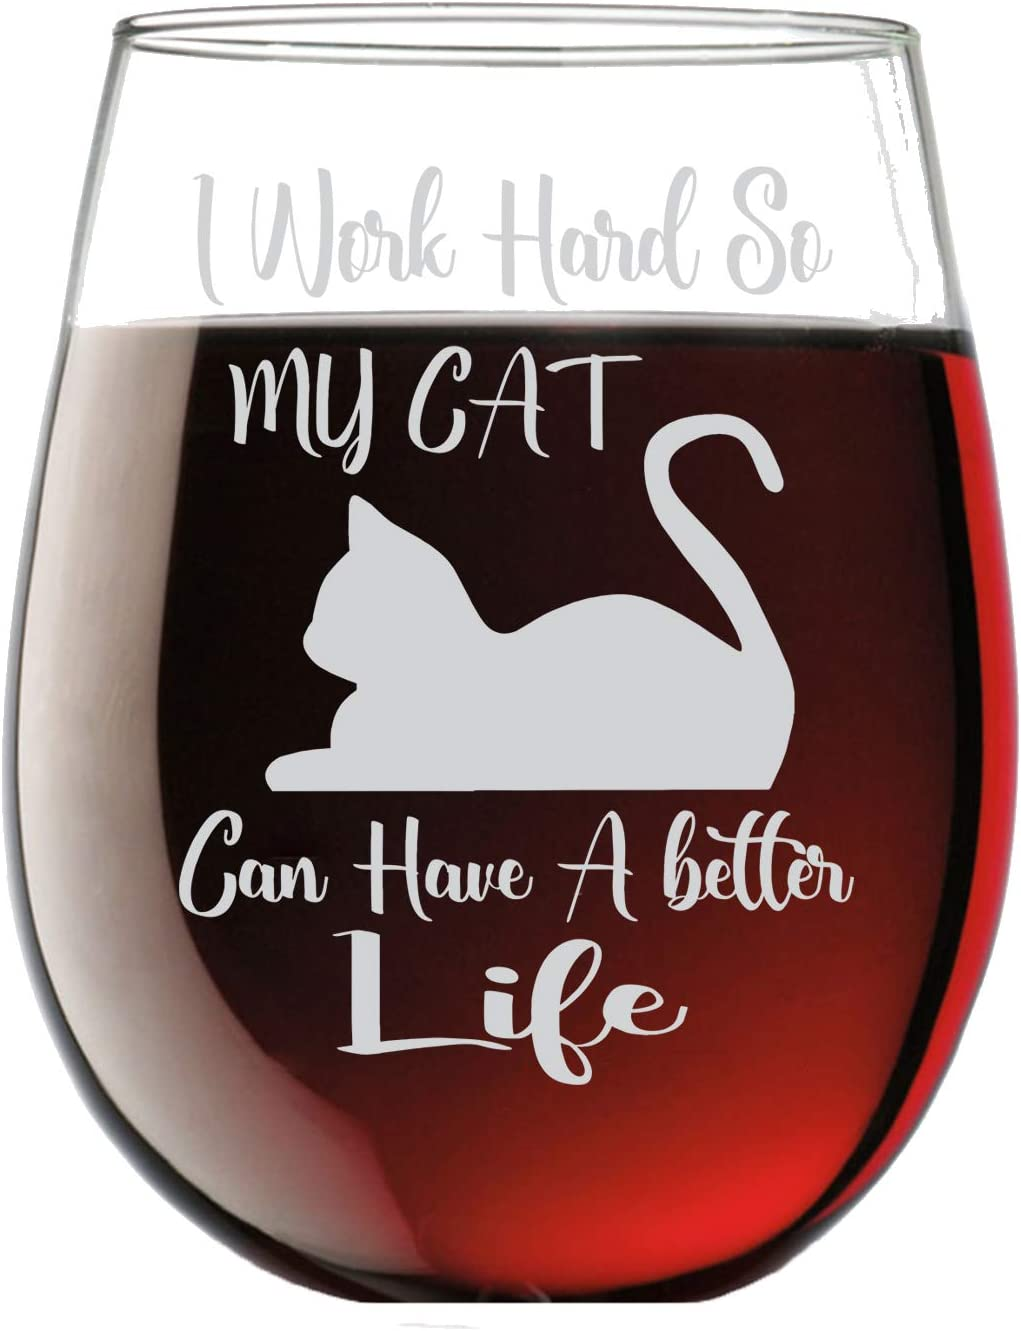 All I Care About Are Cats and Like 3 People 12 oz Wine Glass Stainless wine tumbler with straw Custom Personalized Laser Engraved Gift